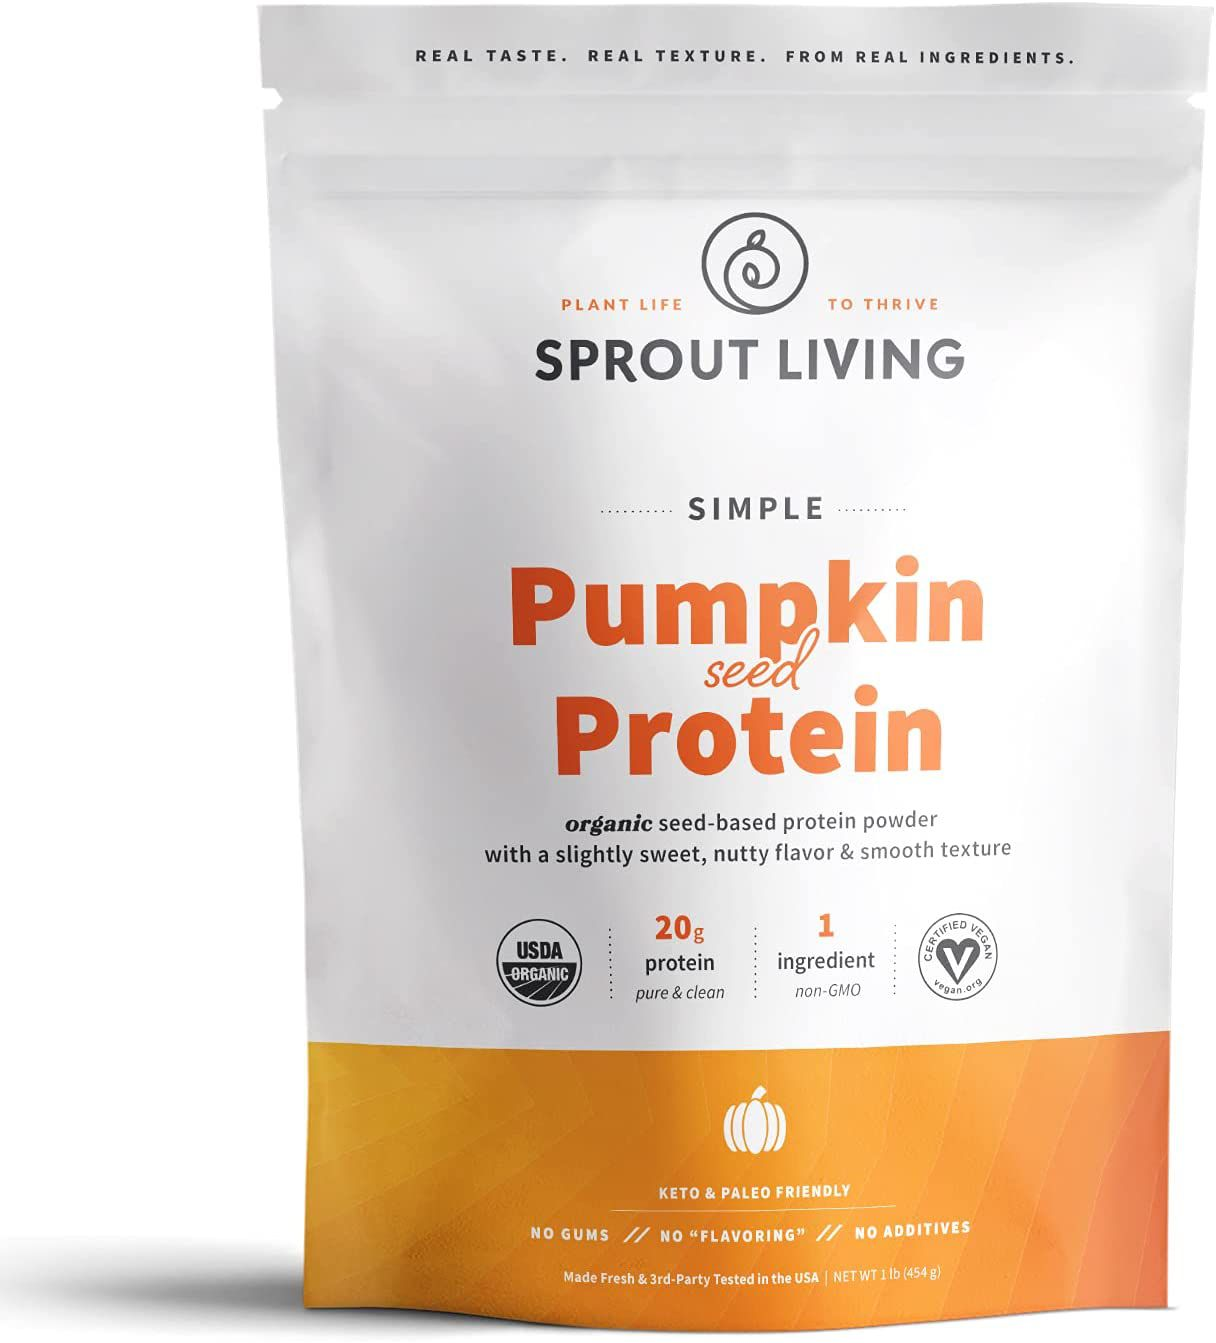 Sprout Living Pumpkin Seed Protein